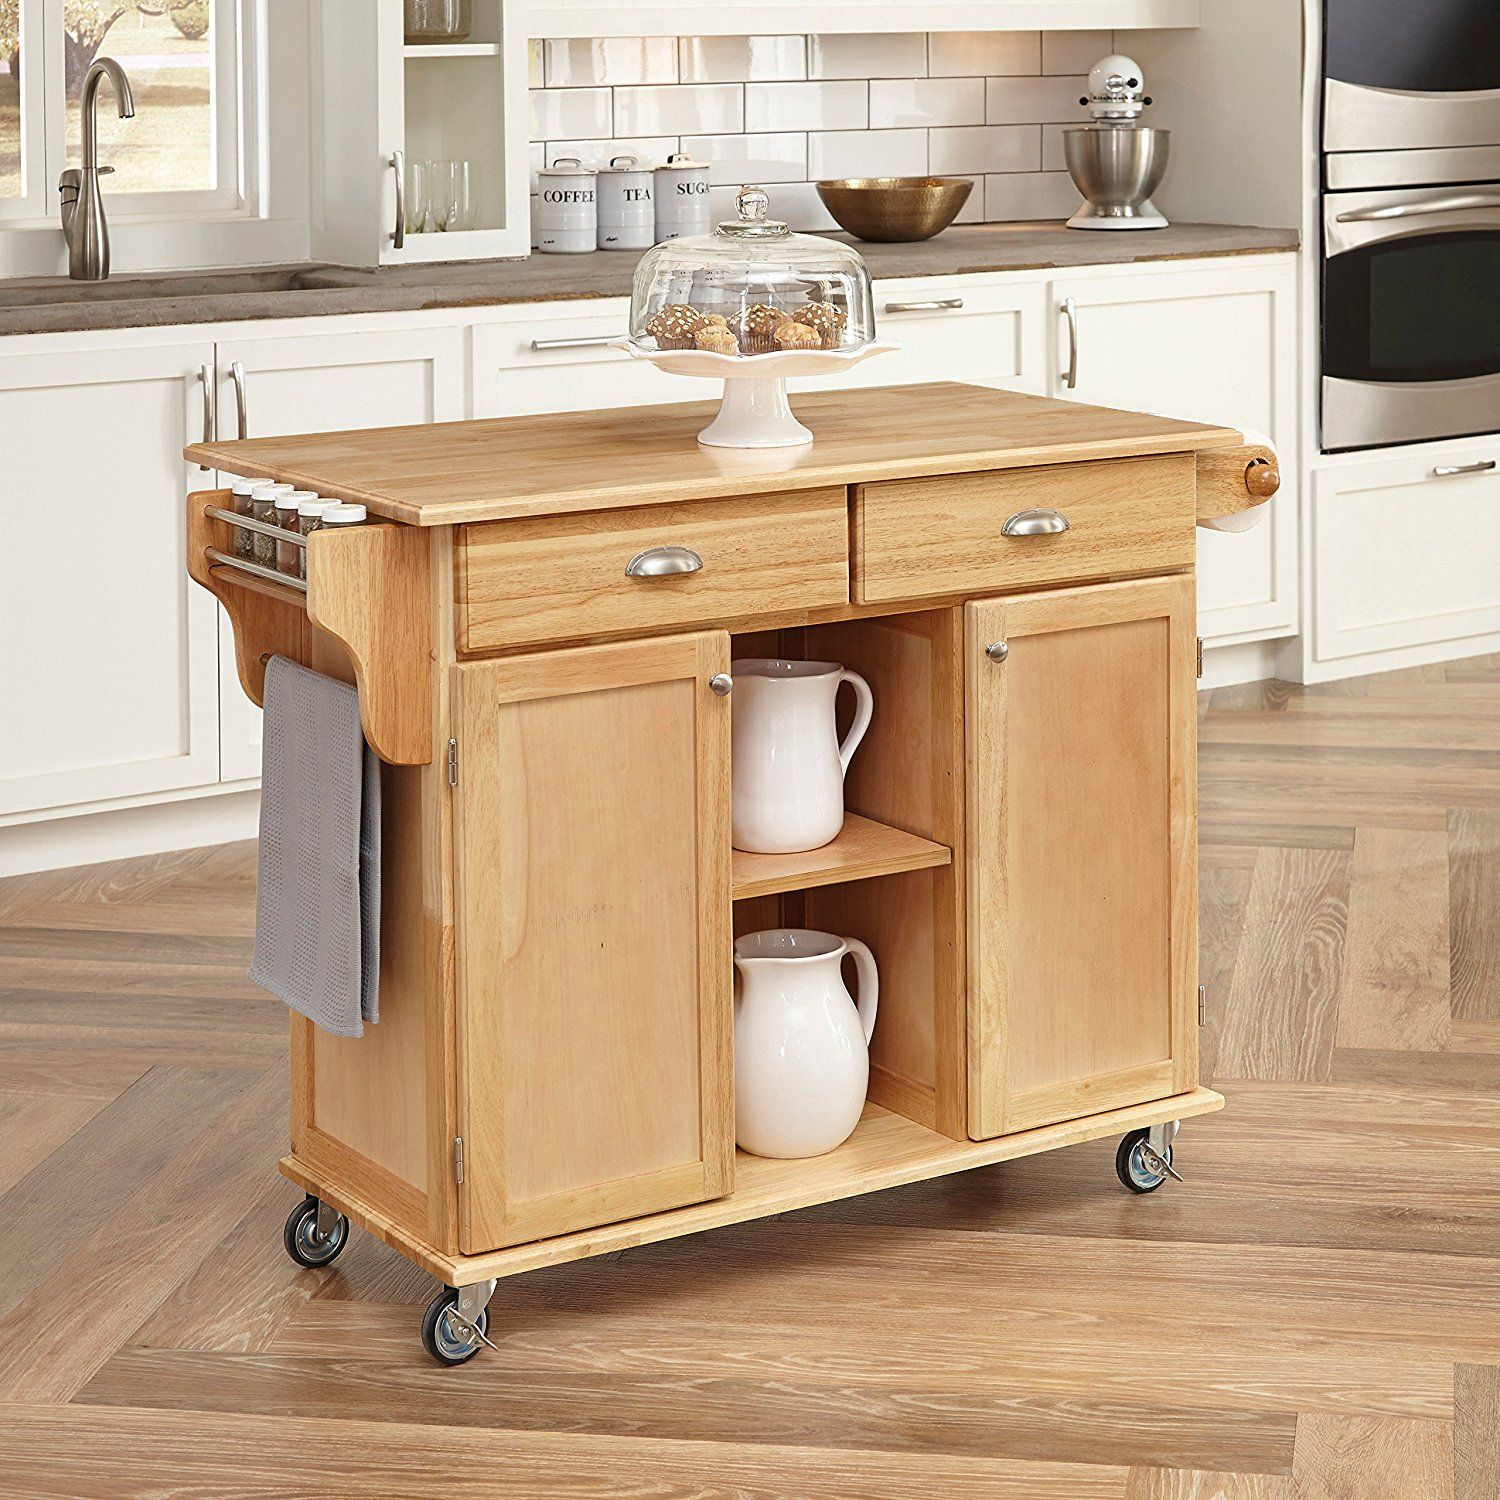 2018 Top 10 Best Kitchen Islands, Carts, Centers & Utility Tables ...